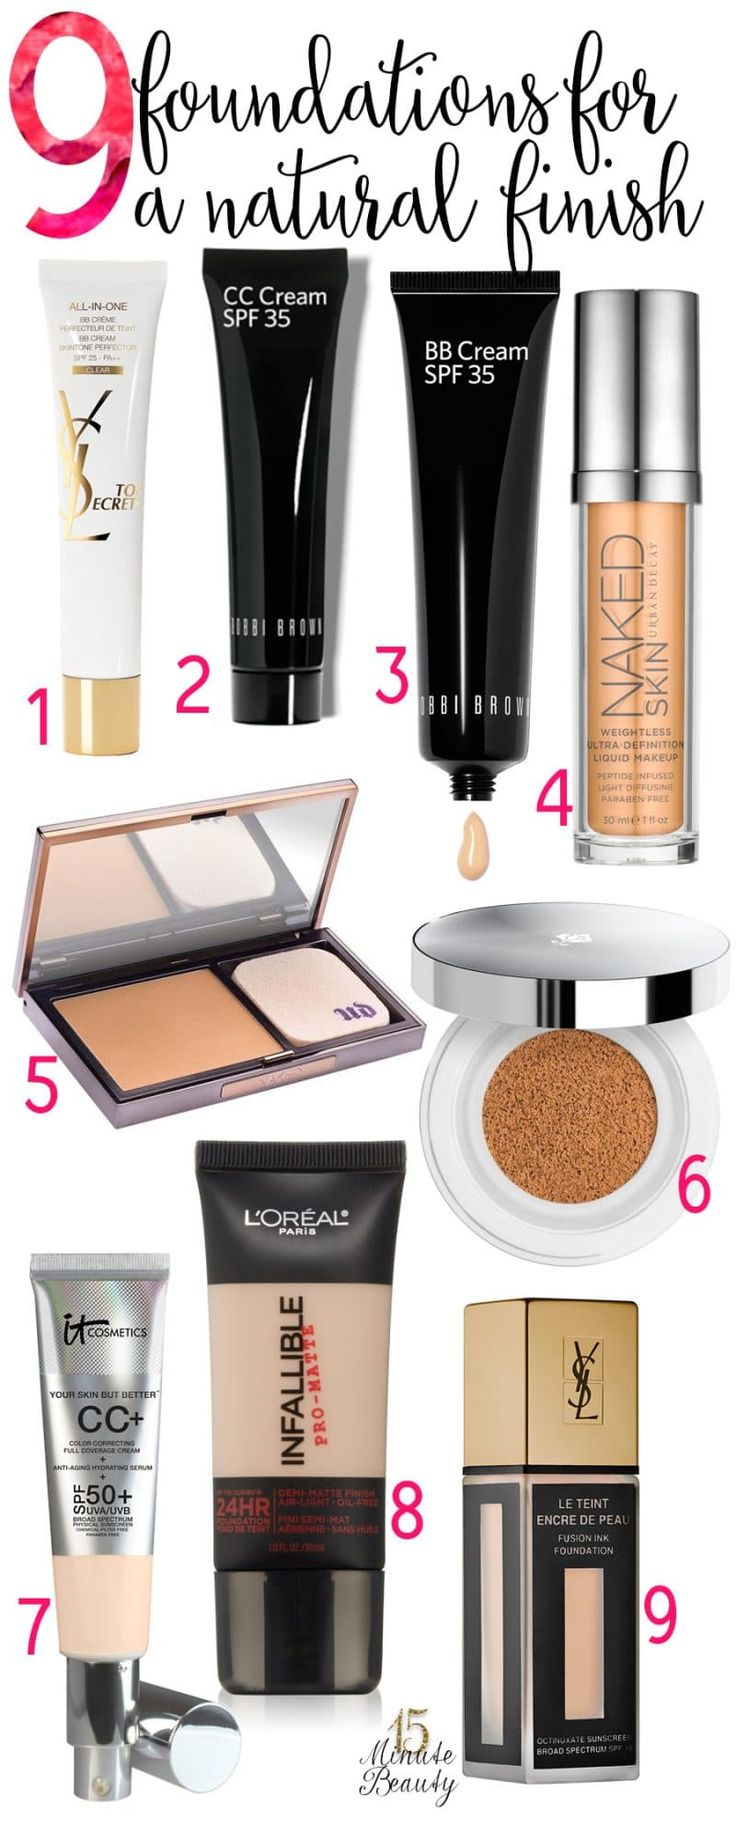 My Top 9 Foundations and BB Creams Beauty, Best beauty